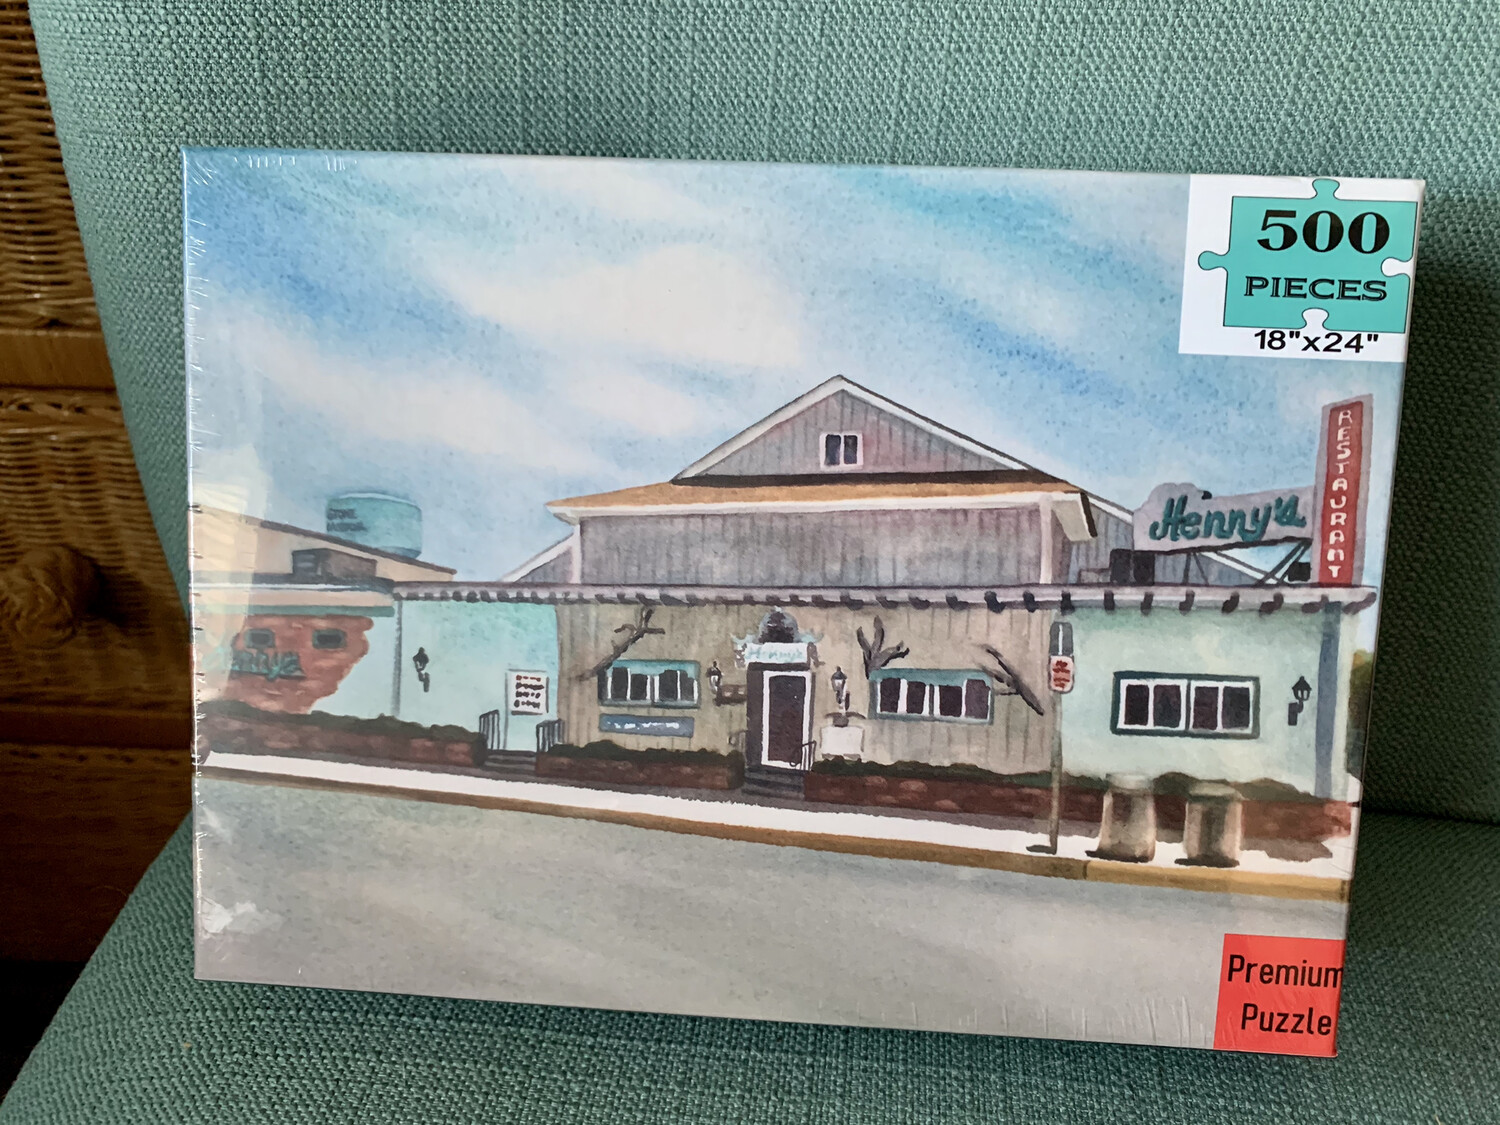 "PUZZLE - 500 Piece Henny's Restaurant Stone Harbor NJ Puzzle - Watercolor artwork designed by Brenda Ann - Assembled size 18""x24"""